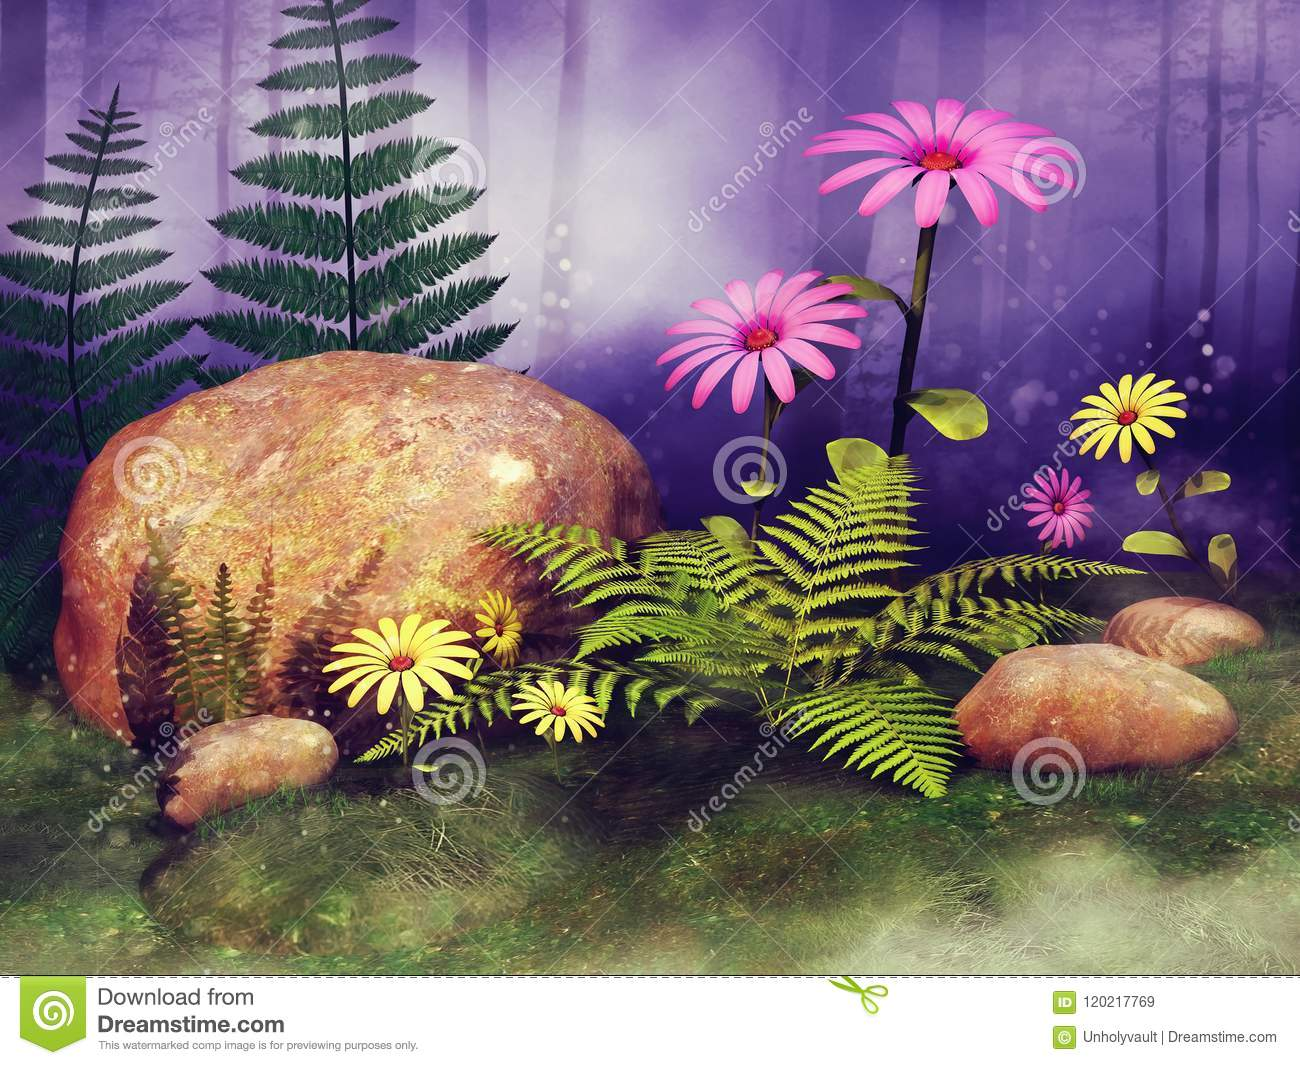 Fairy meadow with flowers and rocks